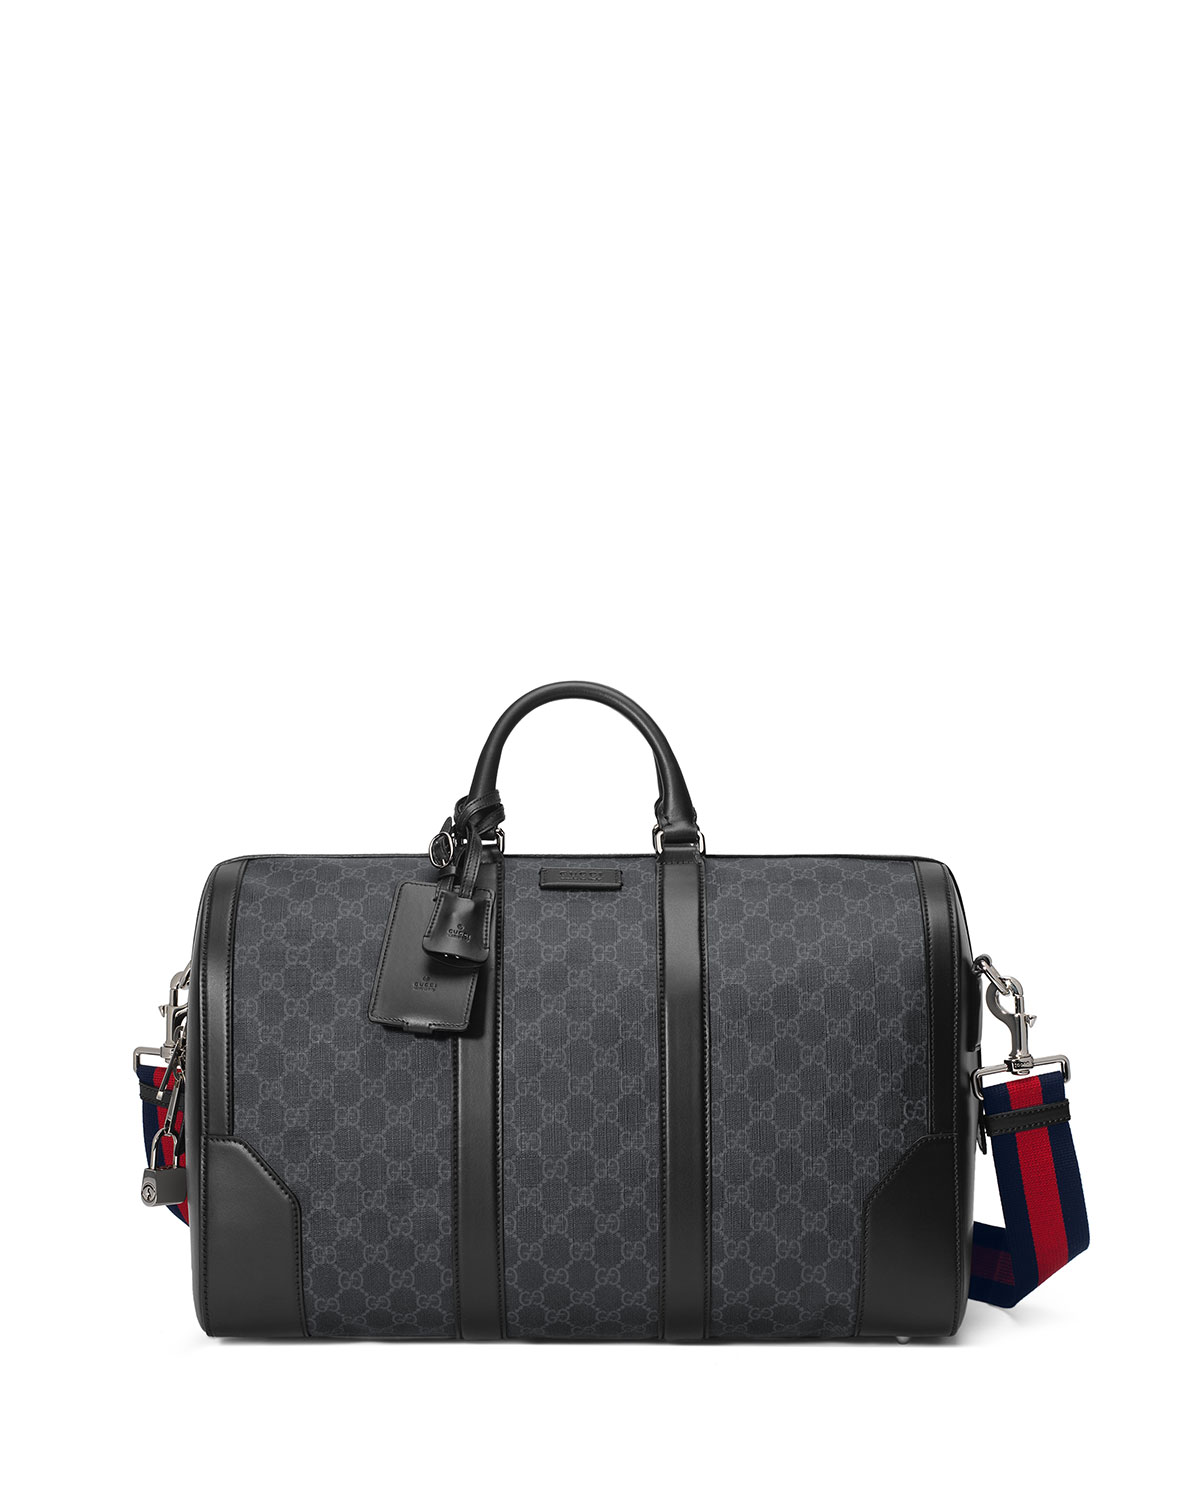 cc73a06e663f7b Gucci Soft GG Supreme Carry-On Duffel Bag | Neiman Marcus